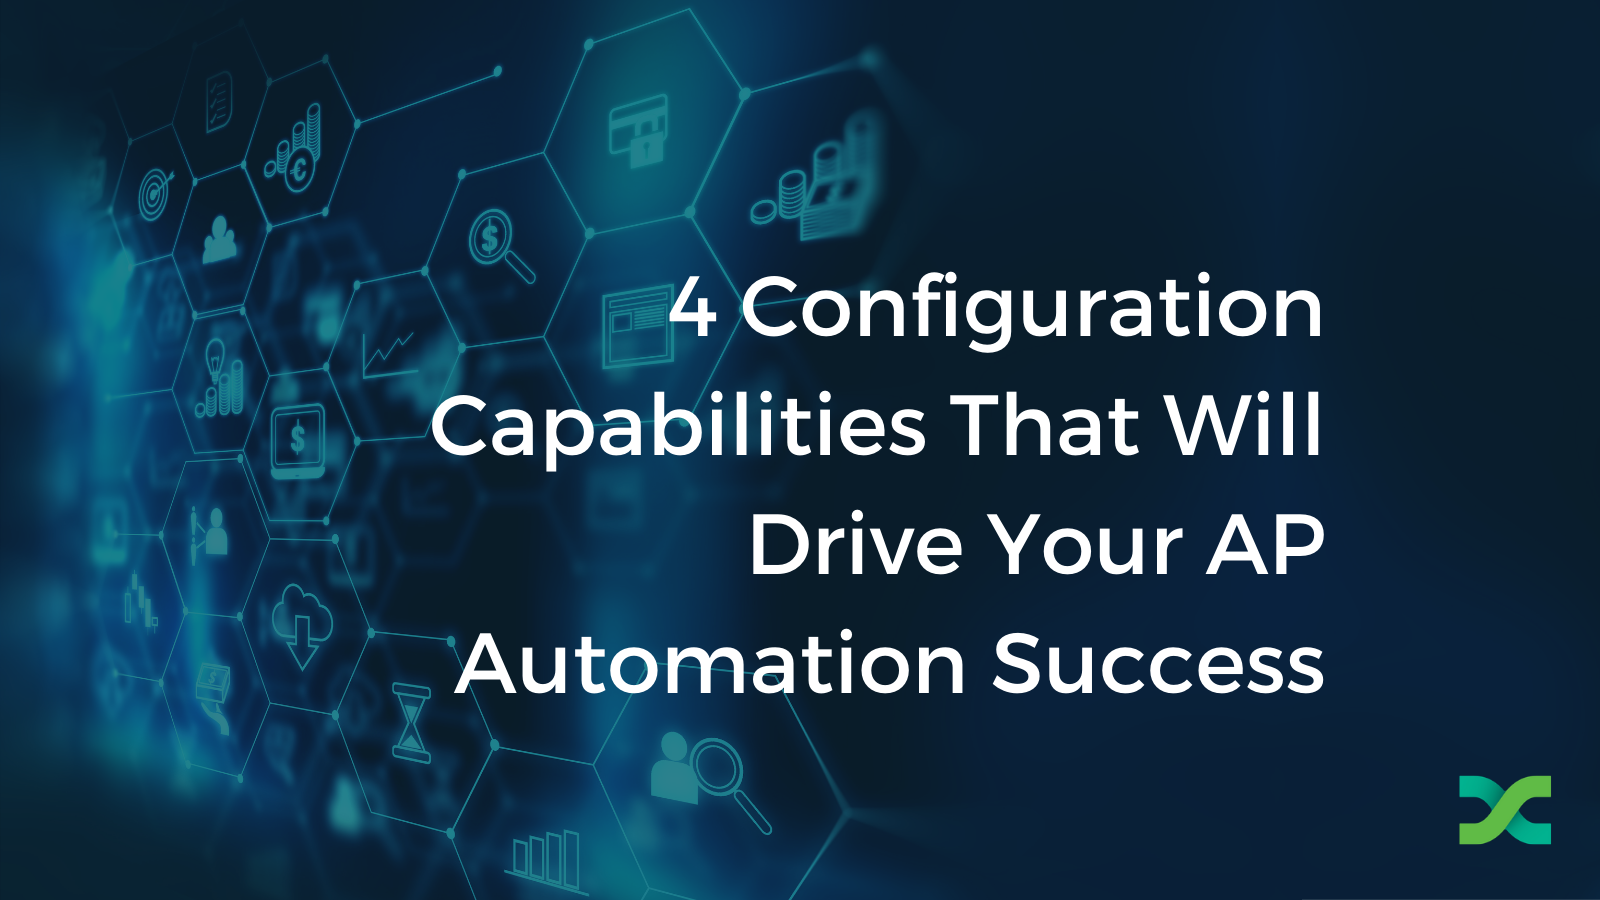 Configurable applications for Accounts Payable Automation success